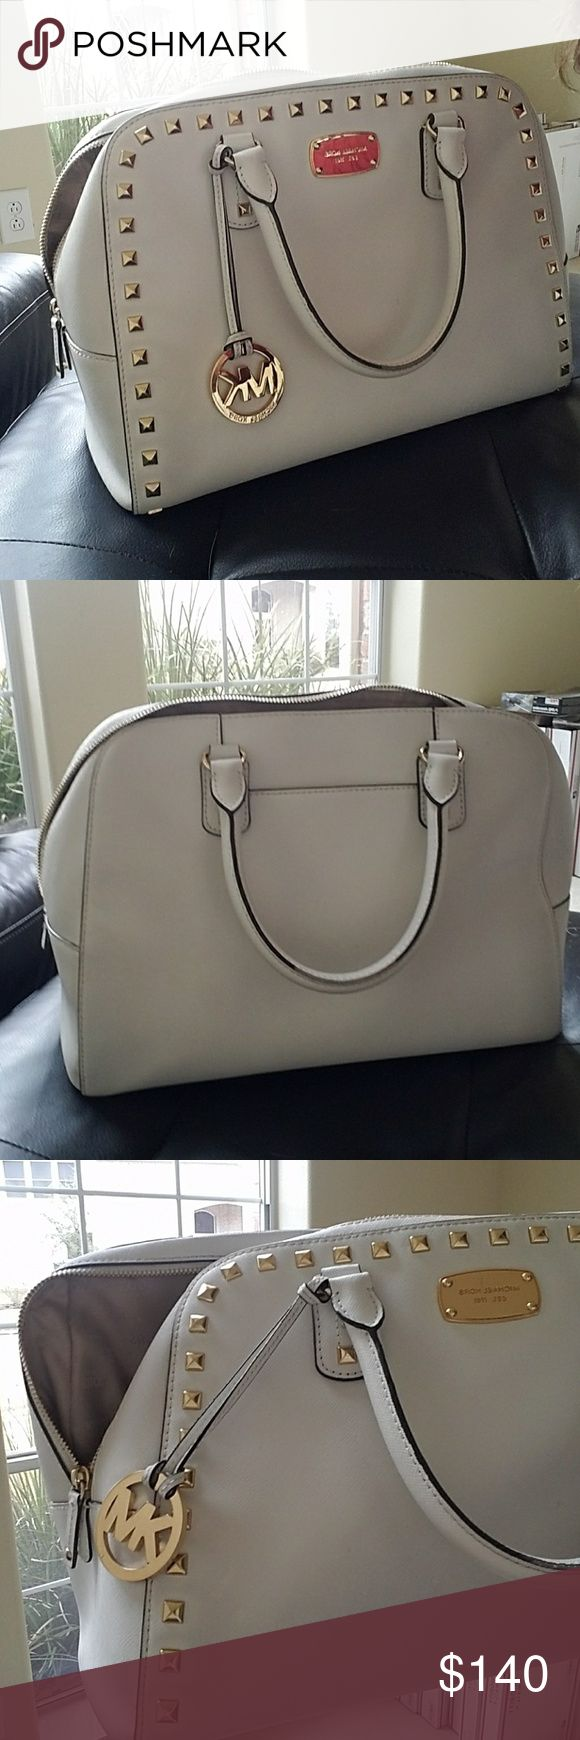 Michael Kors Handbag Off White MK handbag with gold studded detail, name plate and metal dangle. Has an outside pocket for phone storage and 4 small Pockets inside along with the zipper pouch. Pretty clean on the inside aside from a few small spots due to normal use. Outside is very clean aside from a couple of small spots again from normal use Handel's have a little bit of shedding as seen in pic but not noticeable at all and still in great shape. This purse is awesome! Michael Kors Bags…